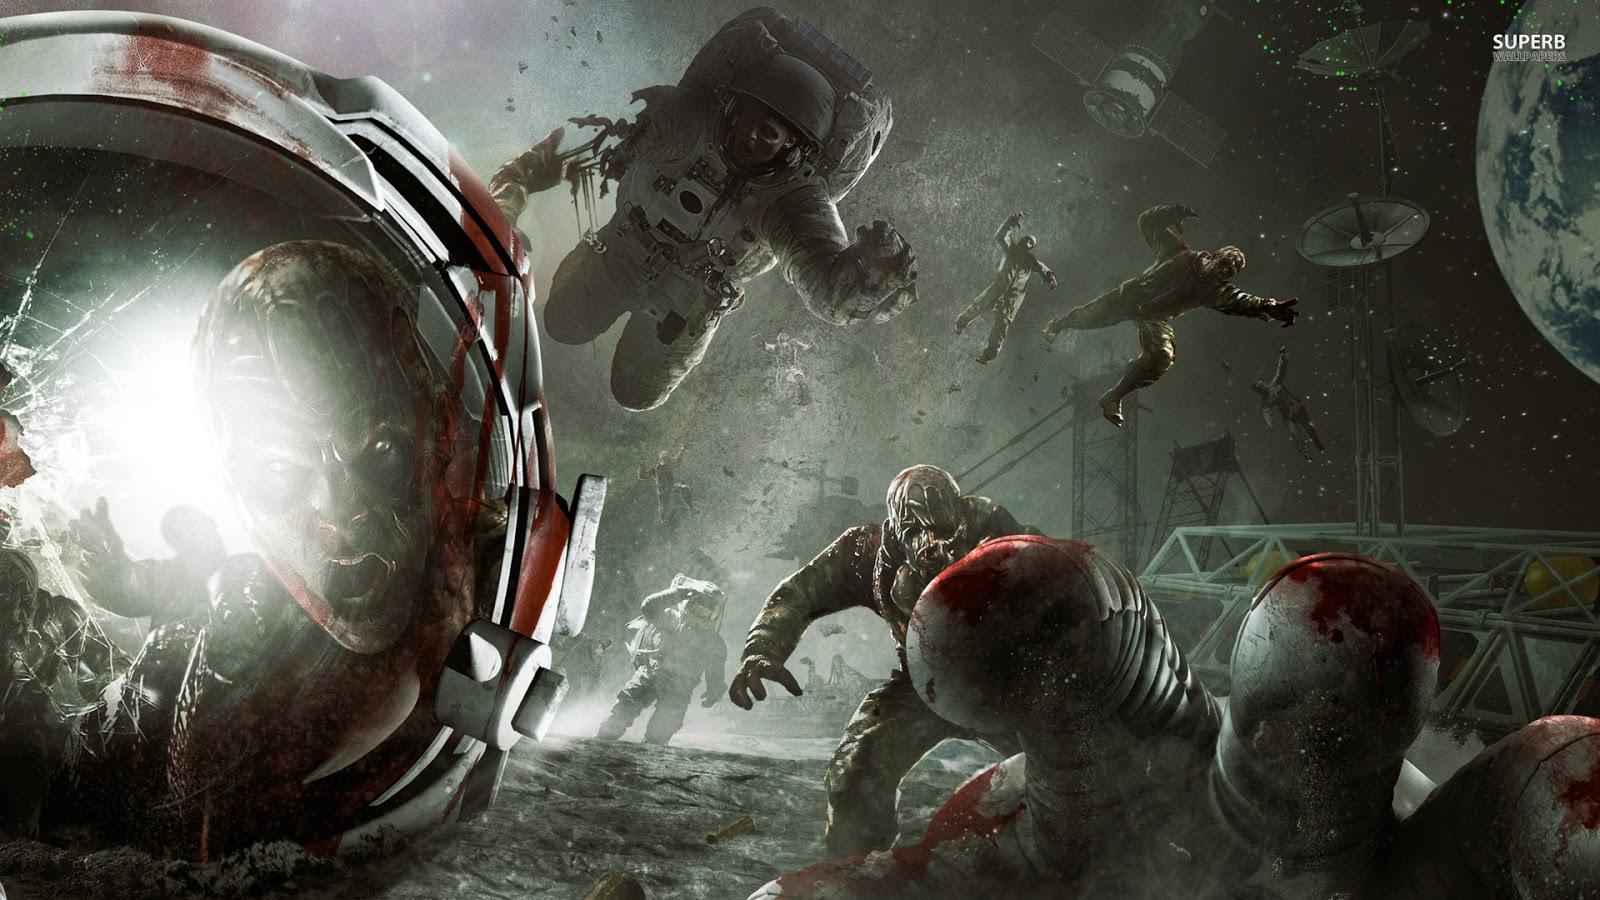 ops 2 zombies wallpaper 1920x1080call of duty  world at war  zombies 1600x900